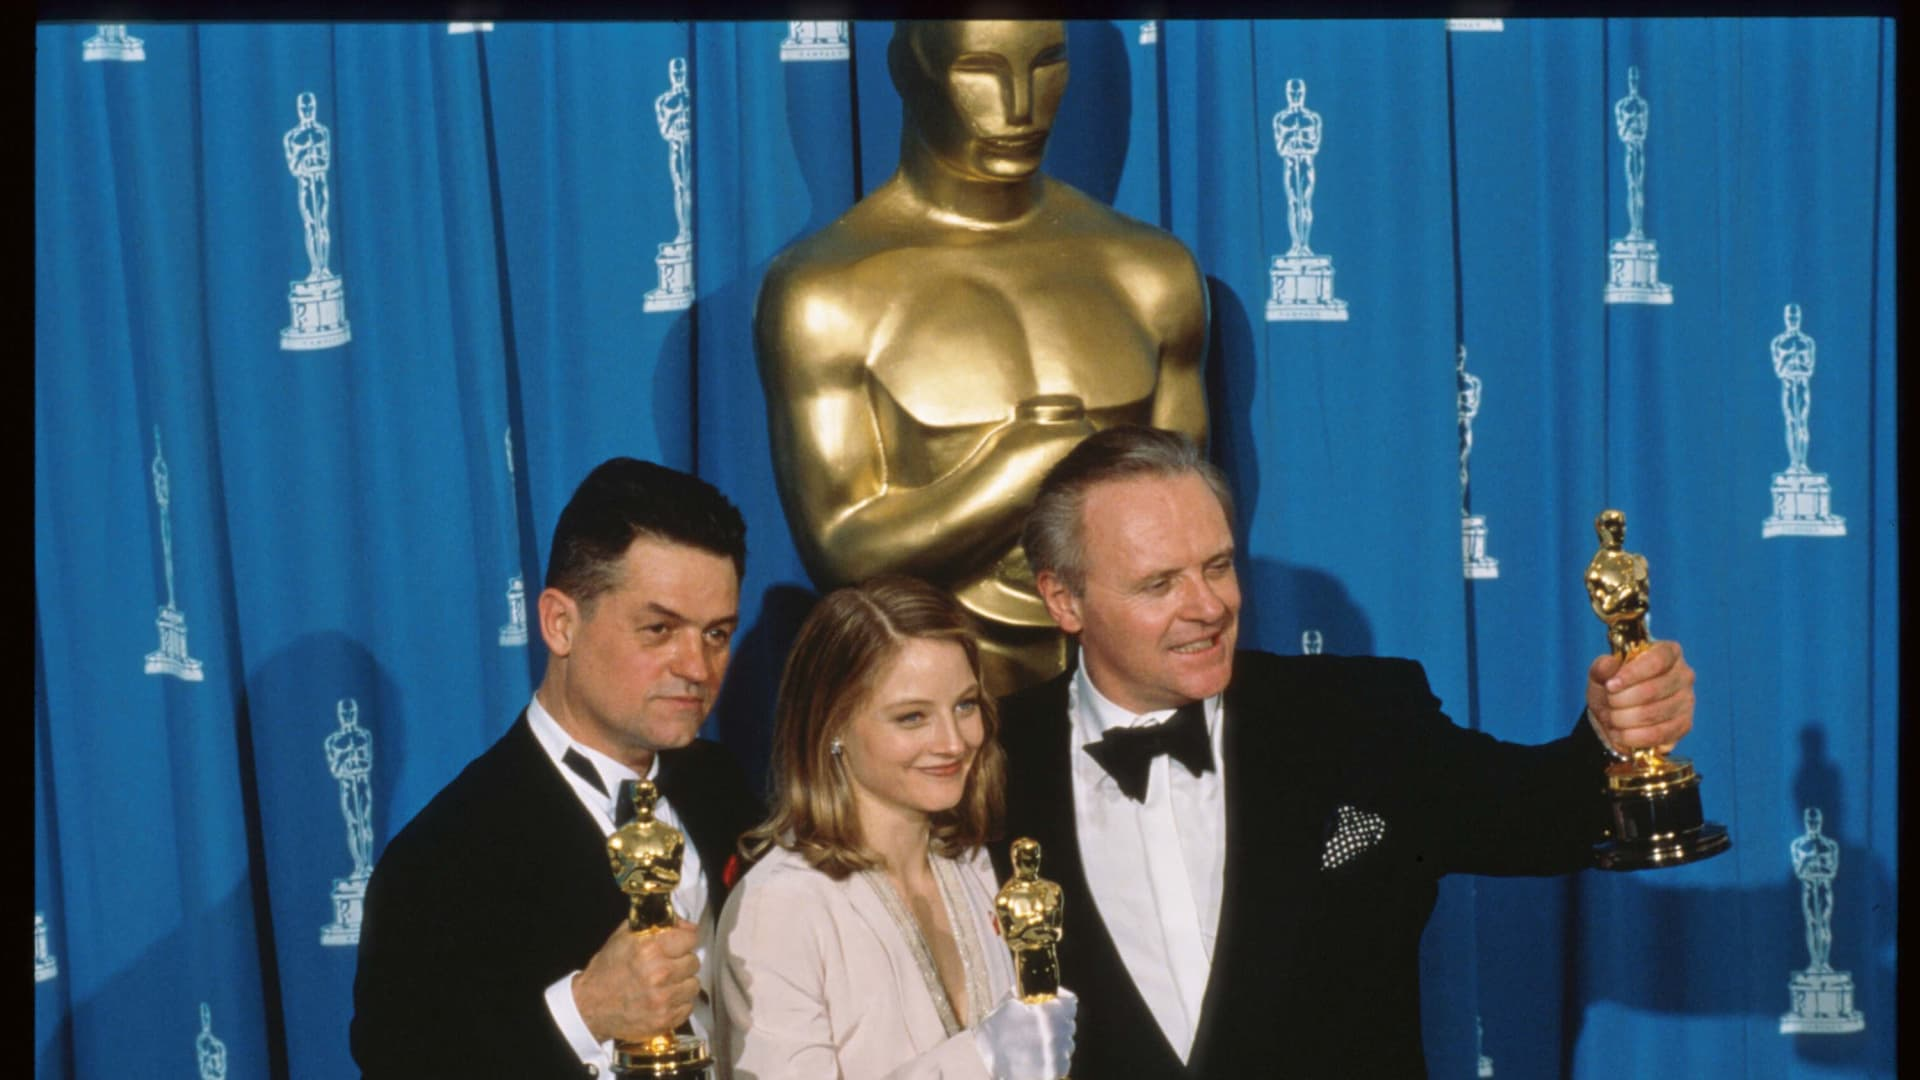 Best Actor recipient Anthony Hopkins, Best Actress recipient Jodie Foster and Best Director recipient Jonathan Demme hold their Oscars at the 64th annual Academy Awards March 30, 1992 in Los Angeles, CA.